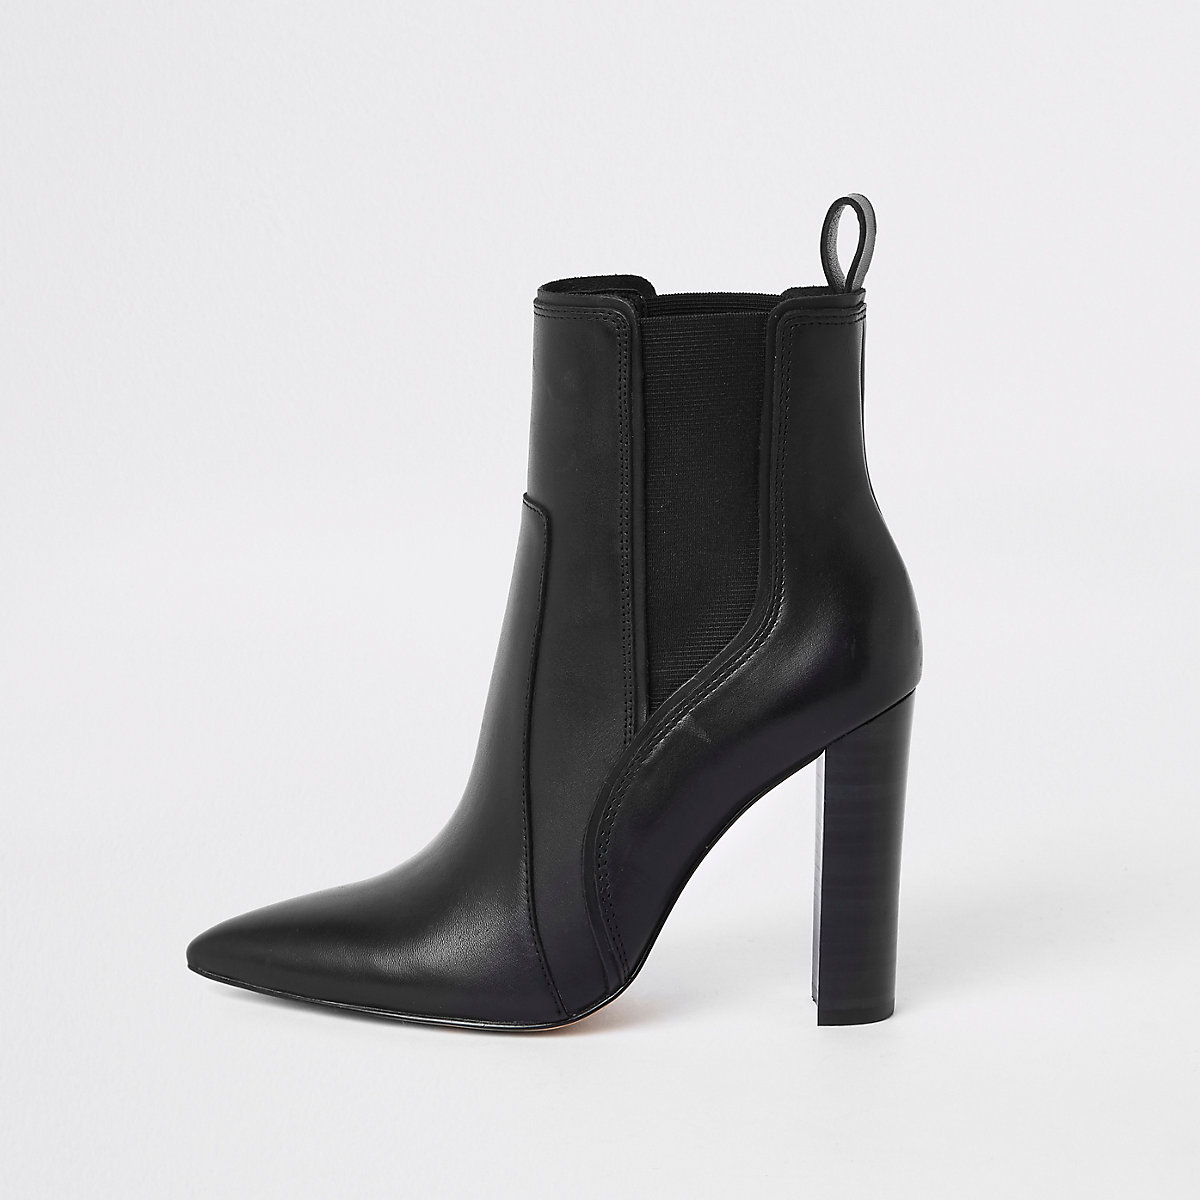 Black leather pointed toe ankle boot